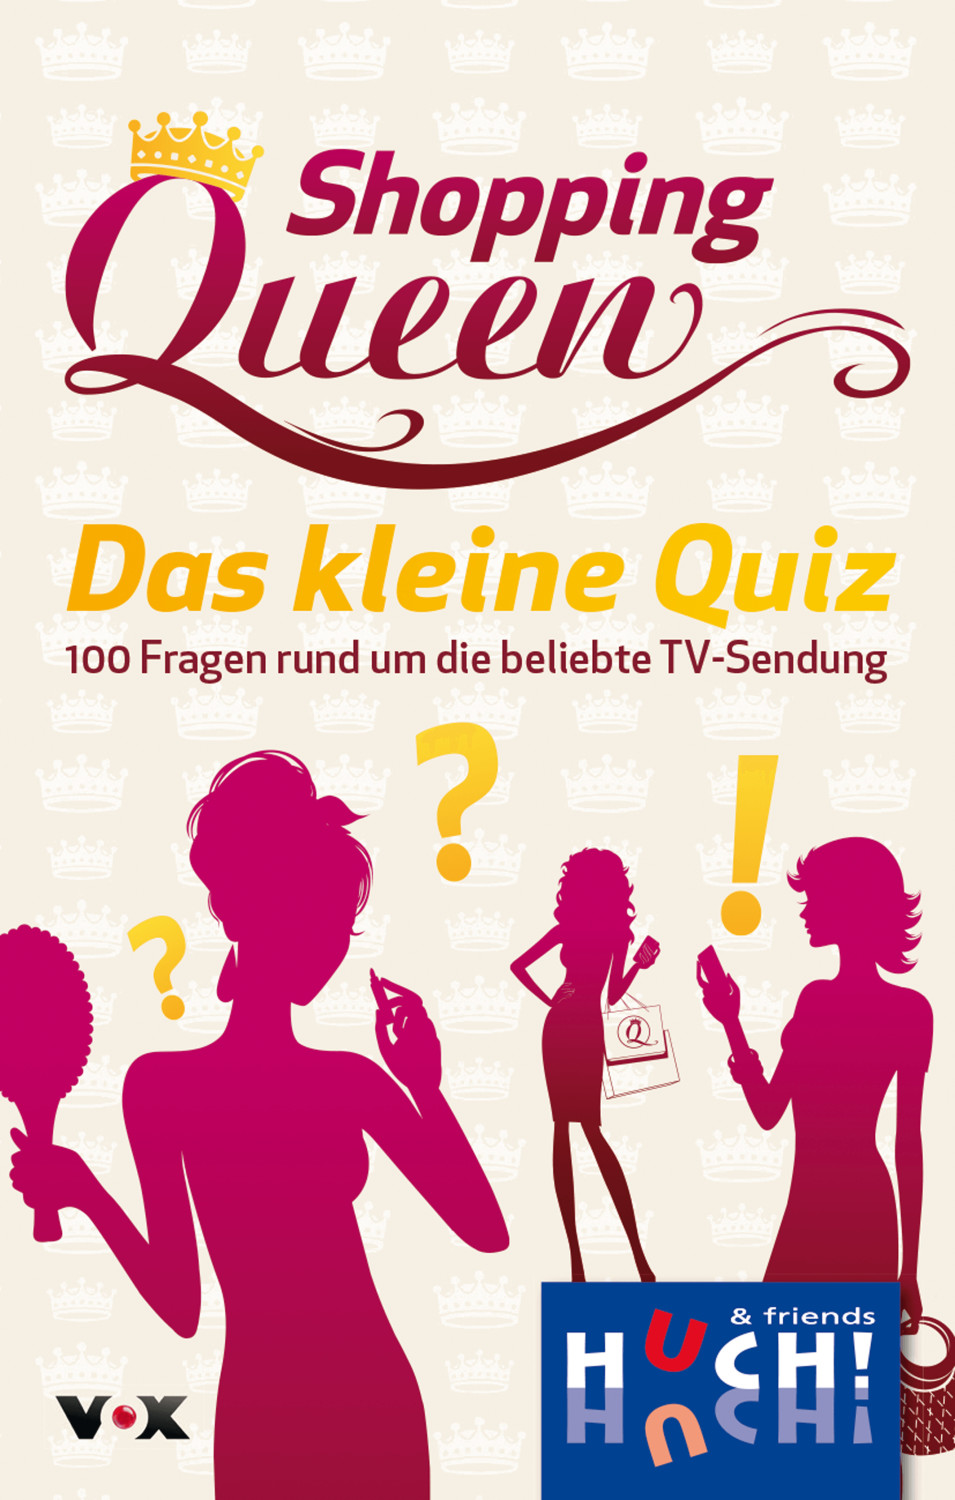 Huch Shopping Queen (879257)